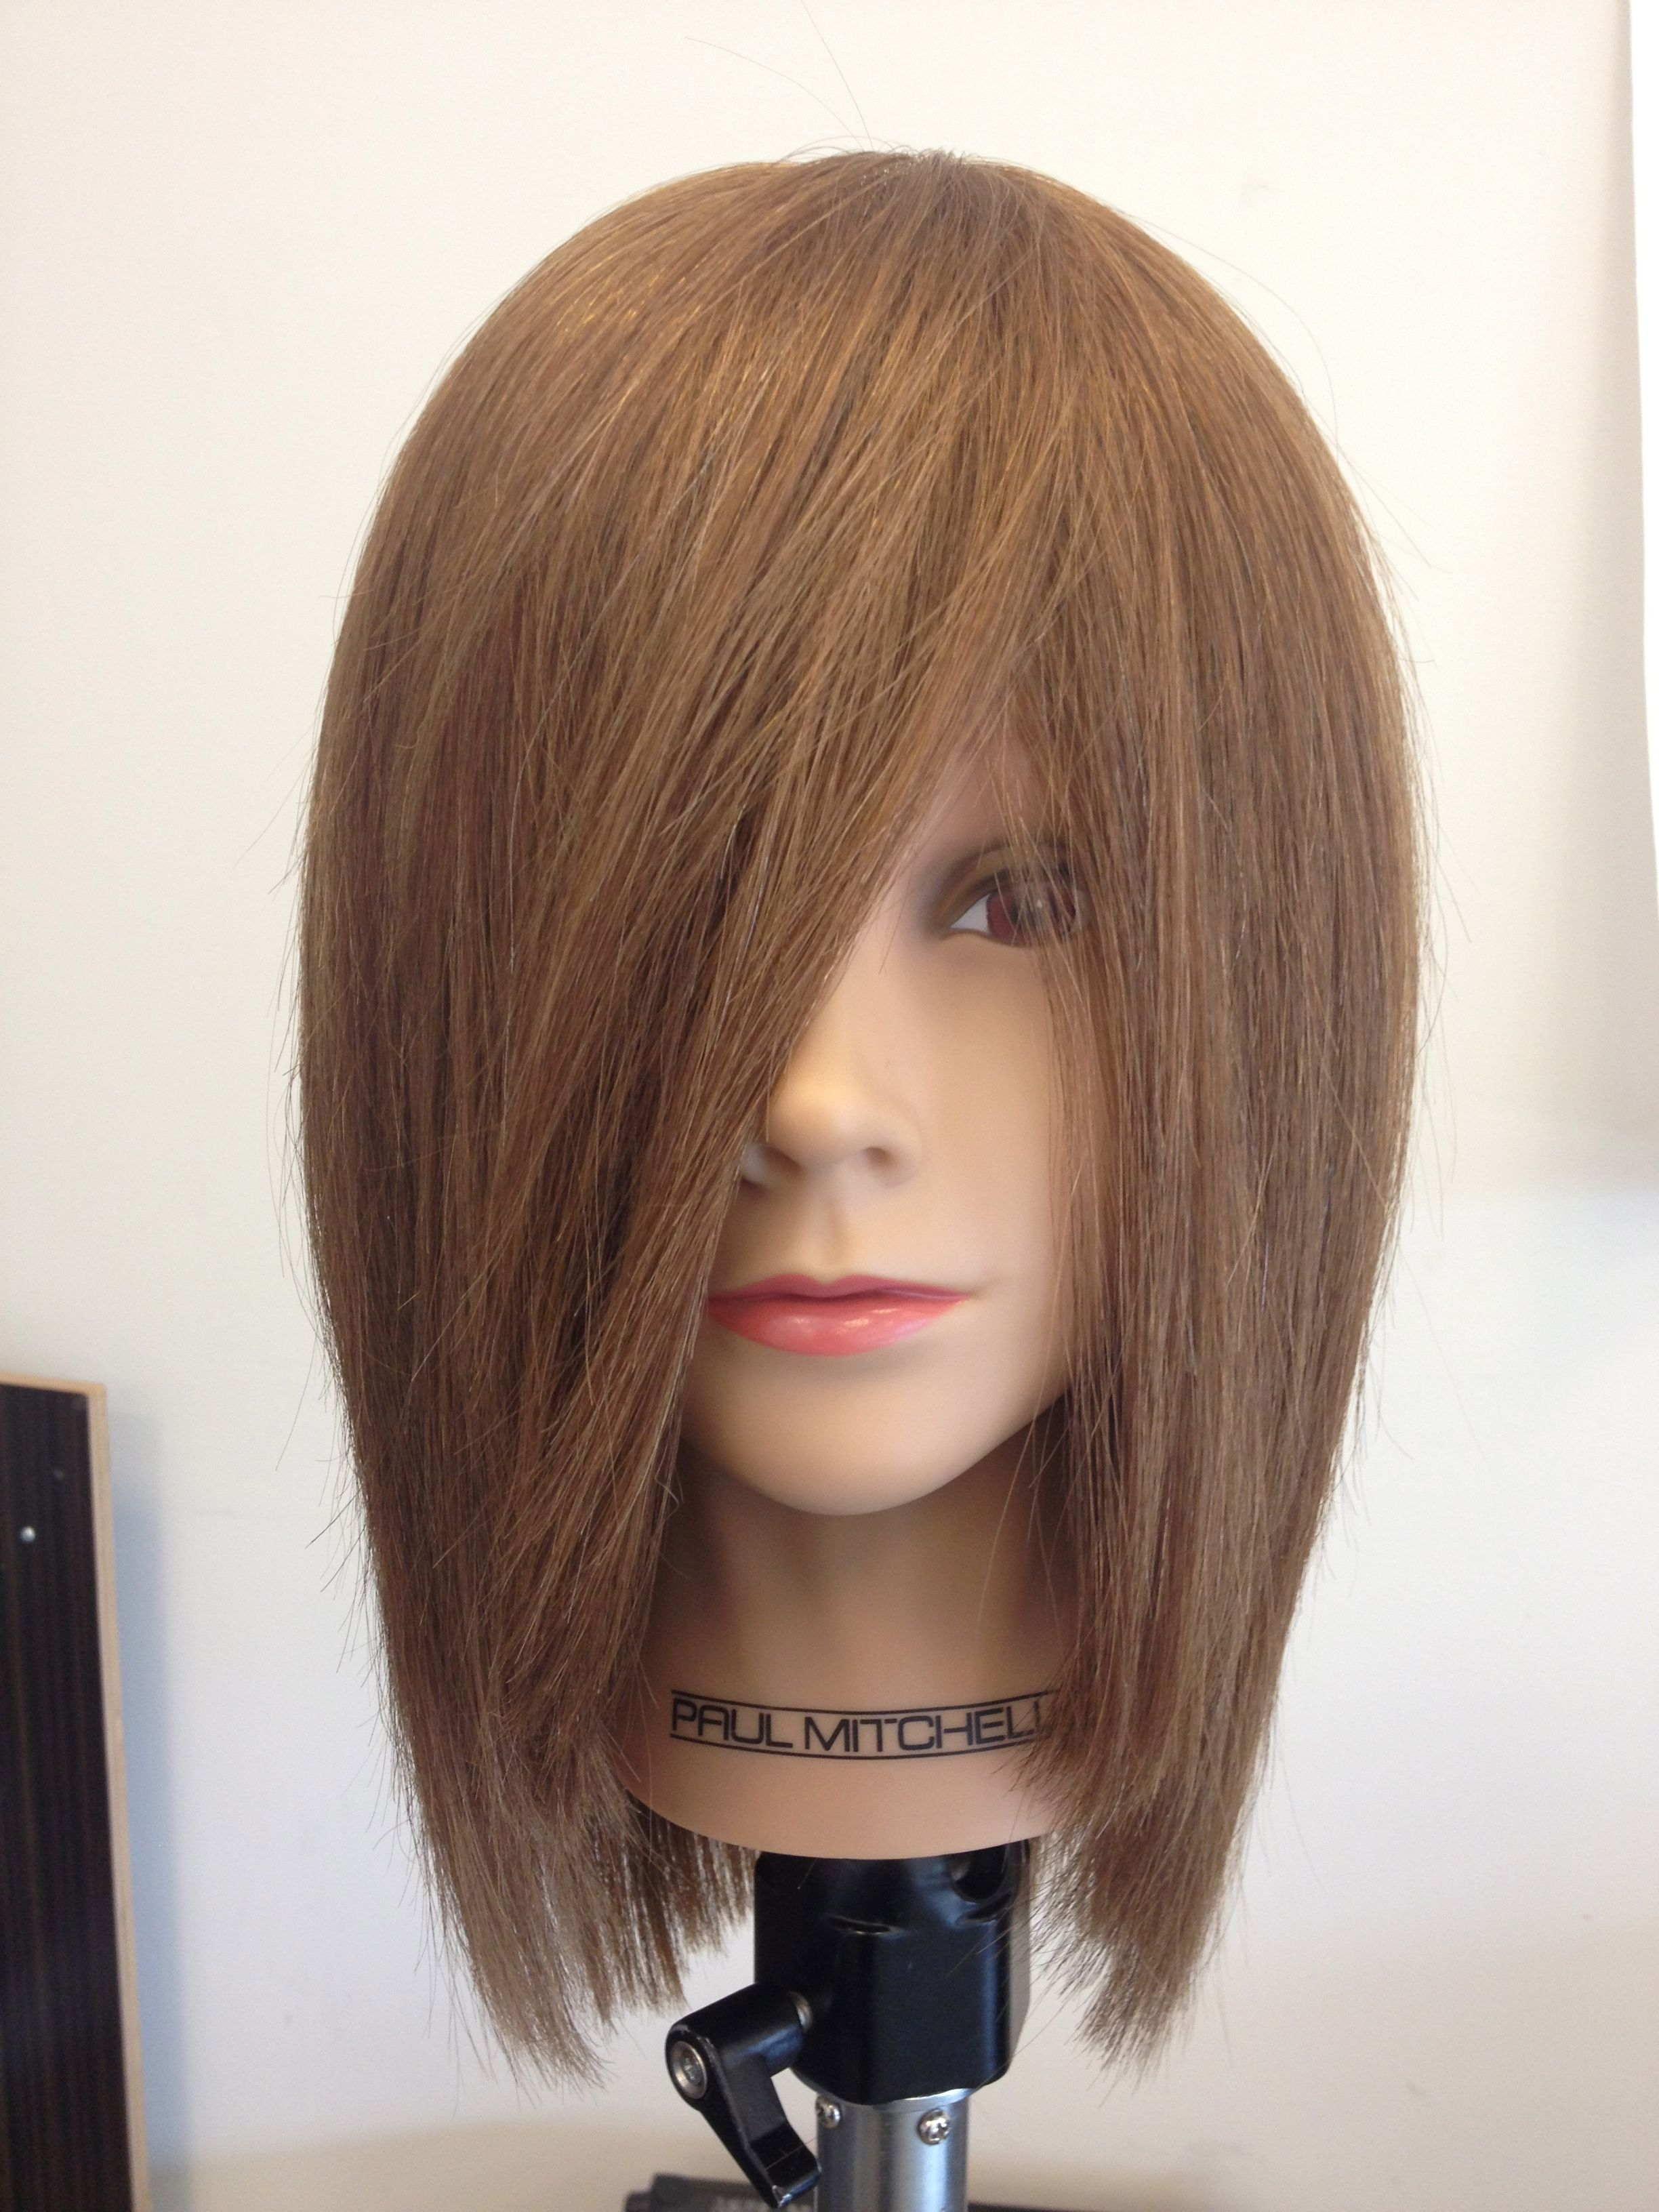 First Layered Haircut At Pmts Overland Park My Evolution At Paul